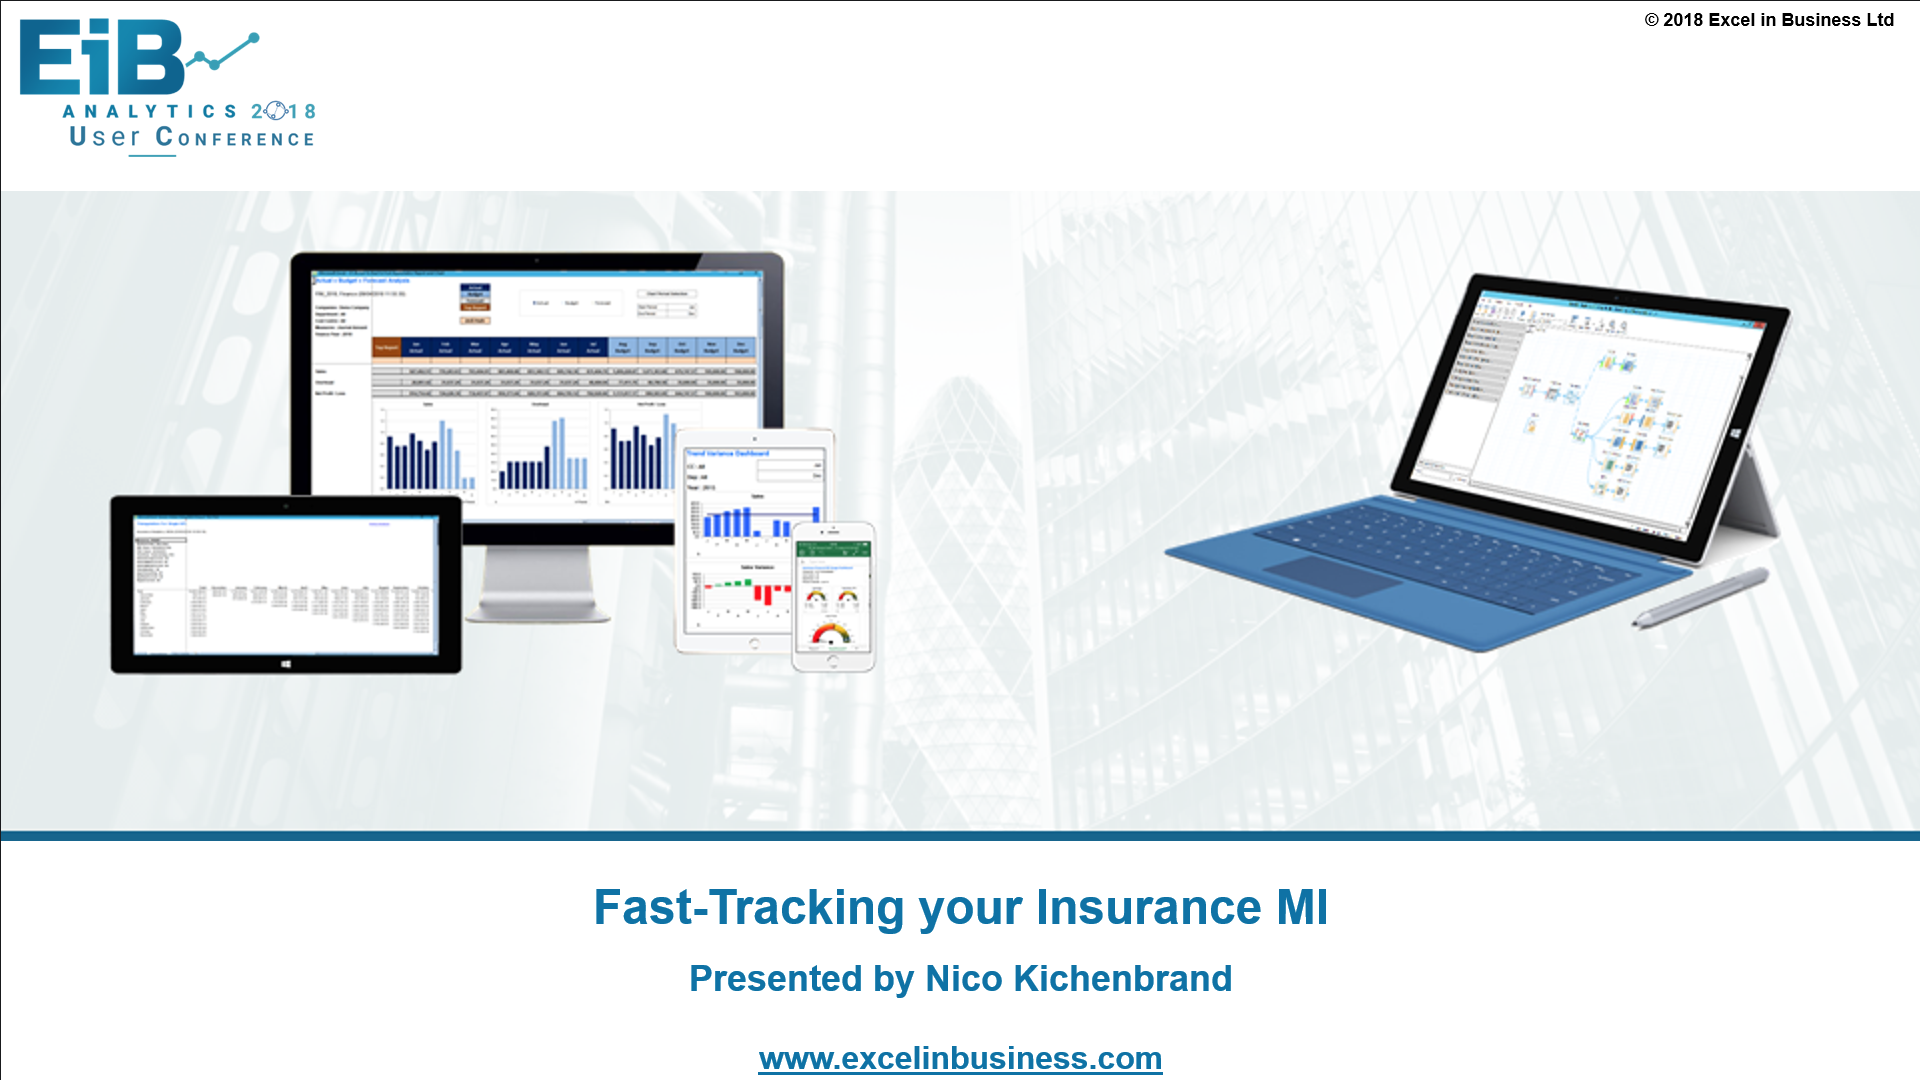 4.6 - Insurance Stream - Fast-Tracking your Insurance MI - Nico Kichenbrand